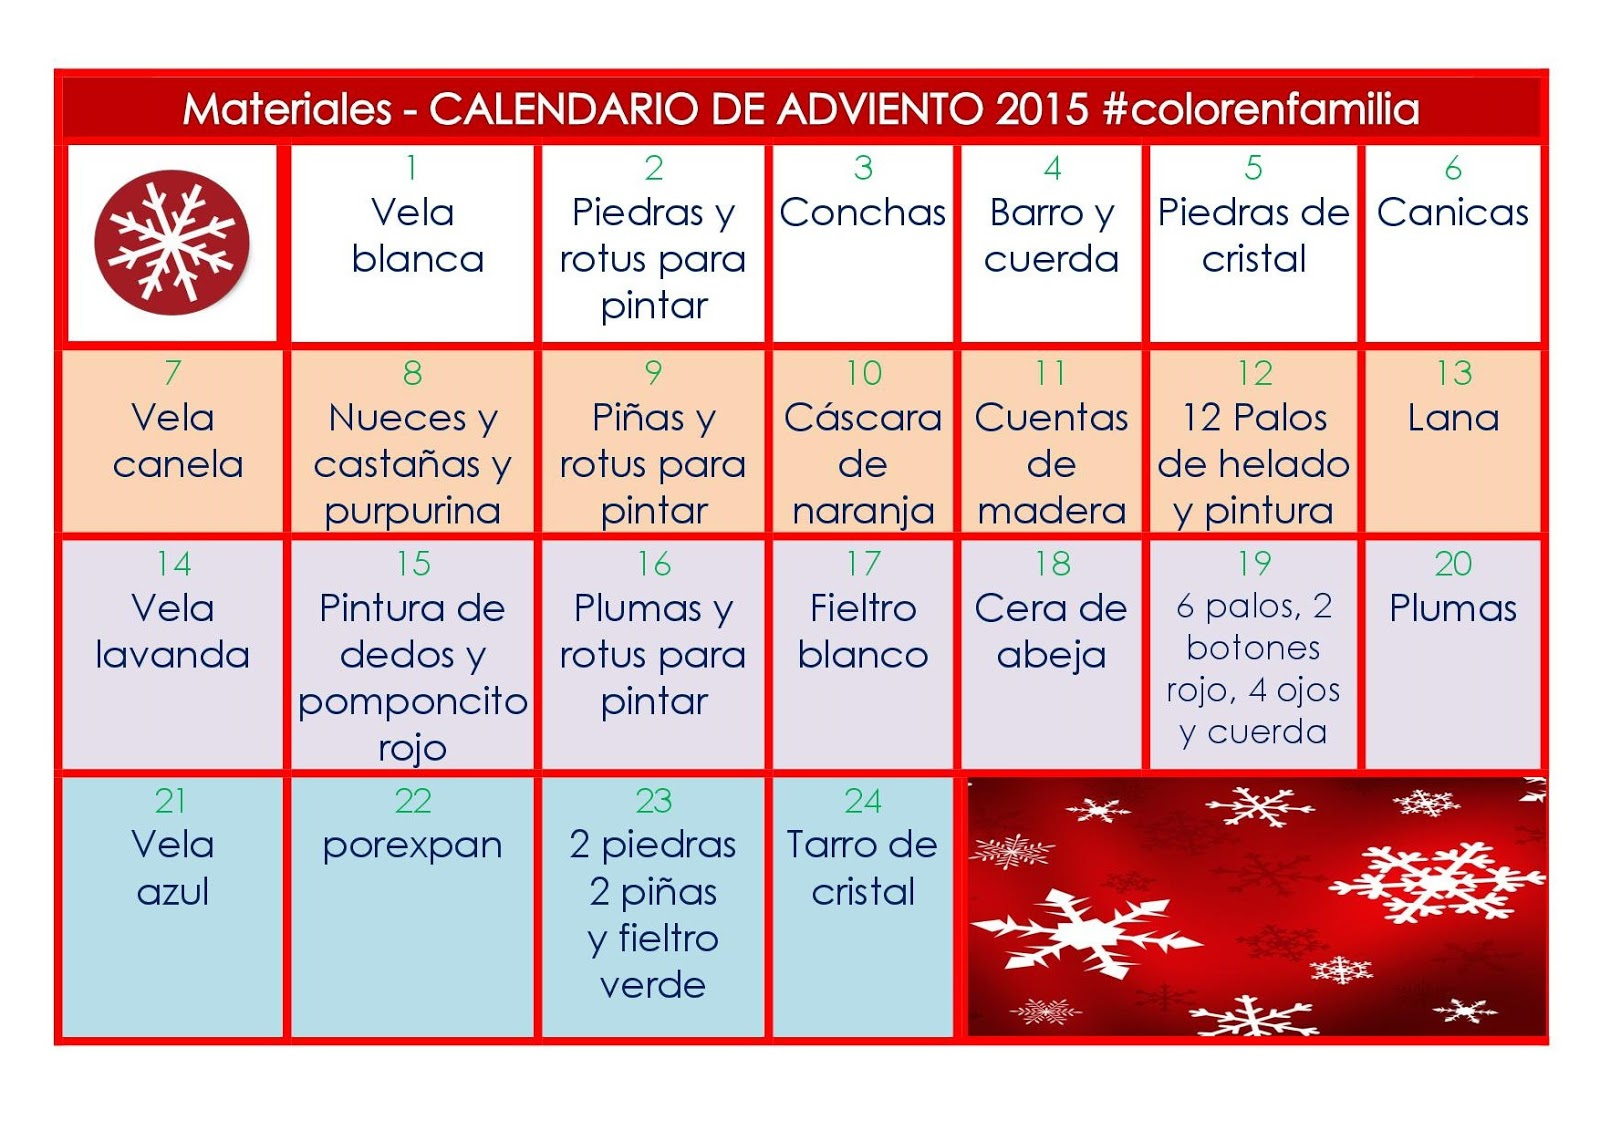 color en familia waldorf calendario de adviento 2015